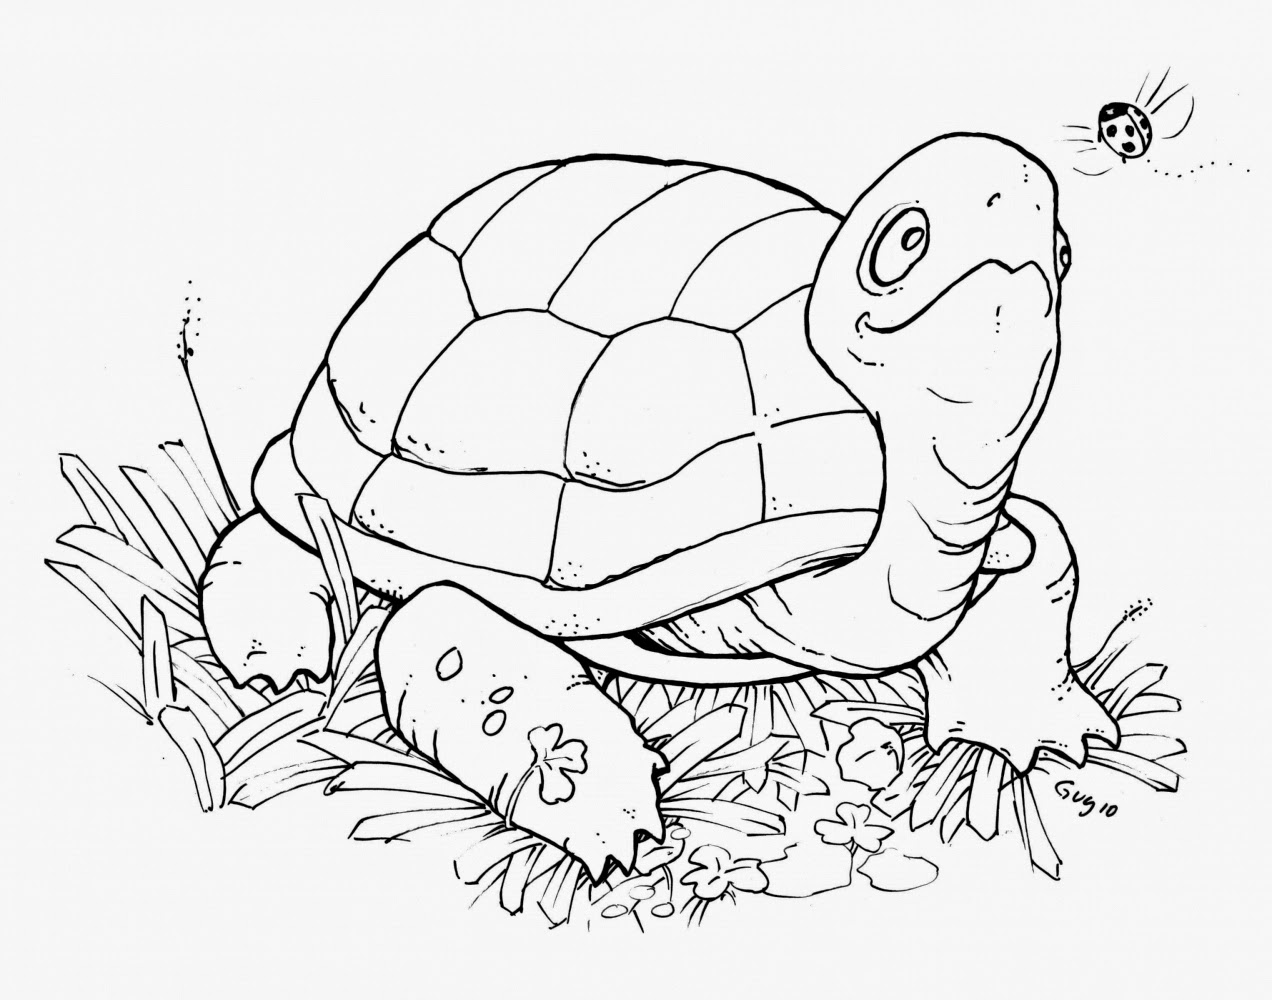 tortoise pictures to colour walking tortoise turtle coloring page wecoloringpagecom pictures colour tortoise to